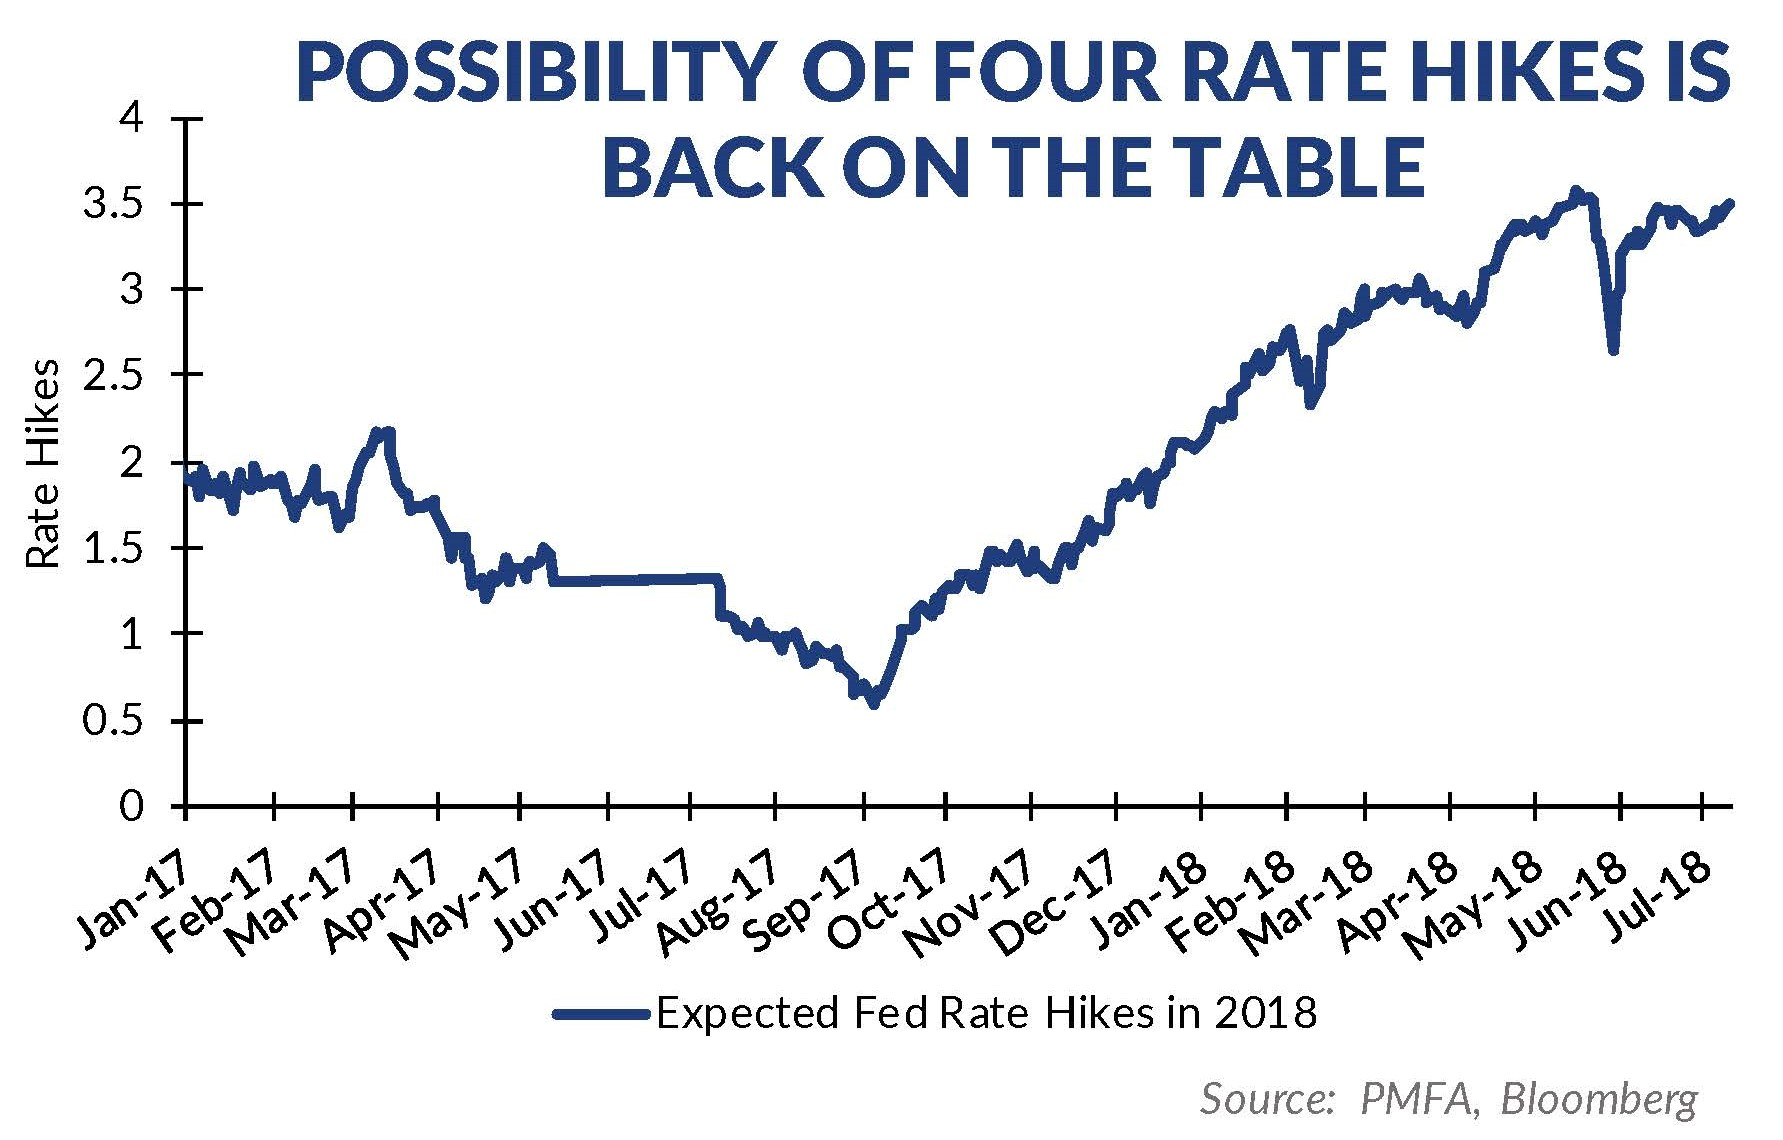 Expected Rate Hikes